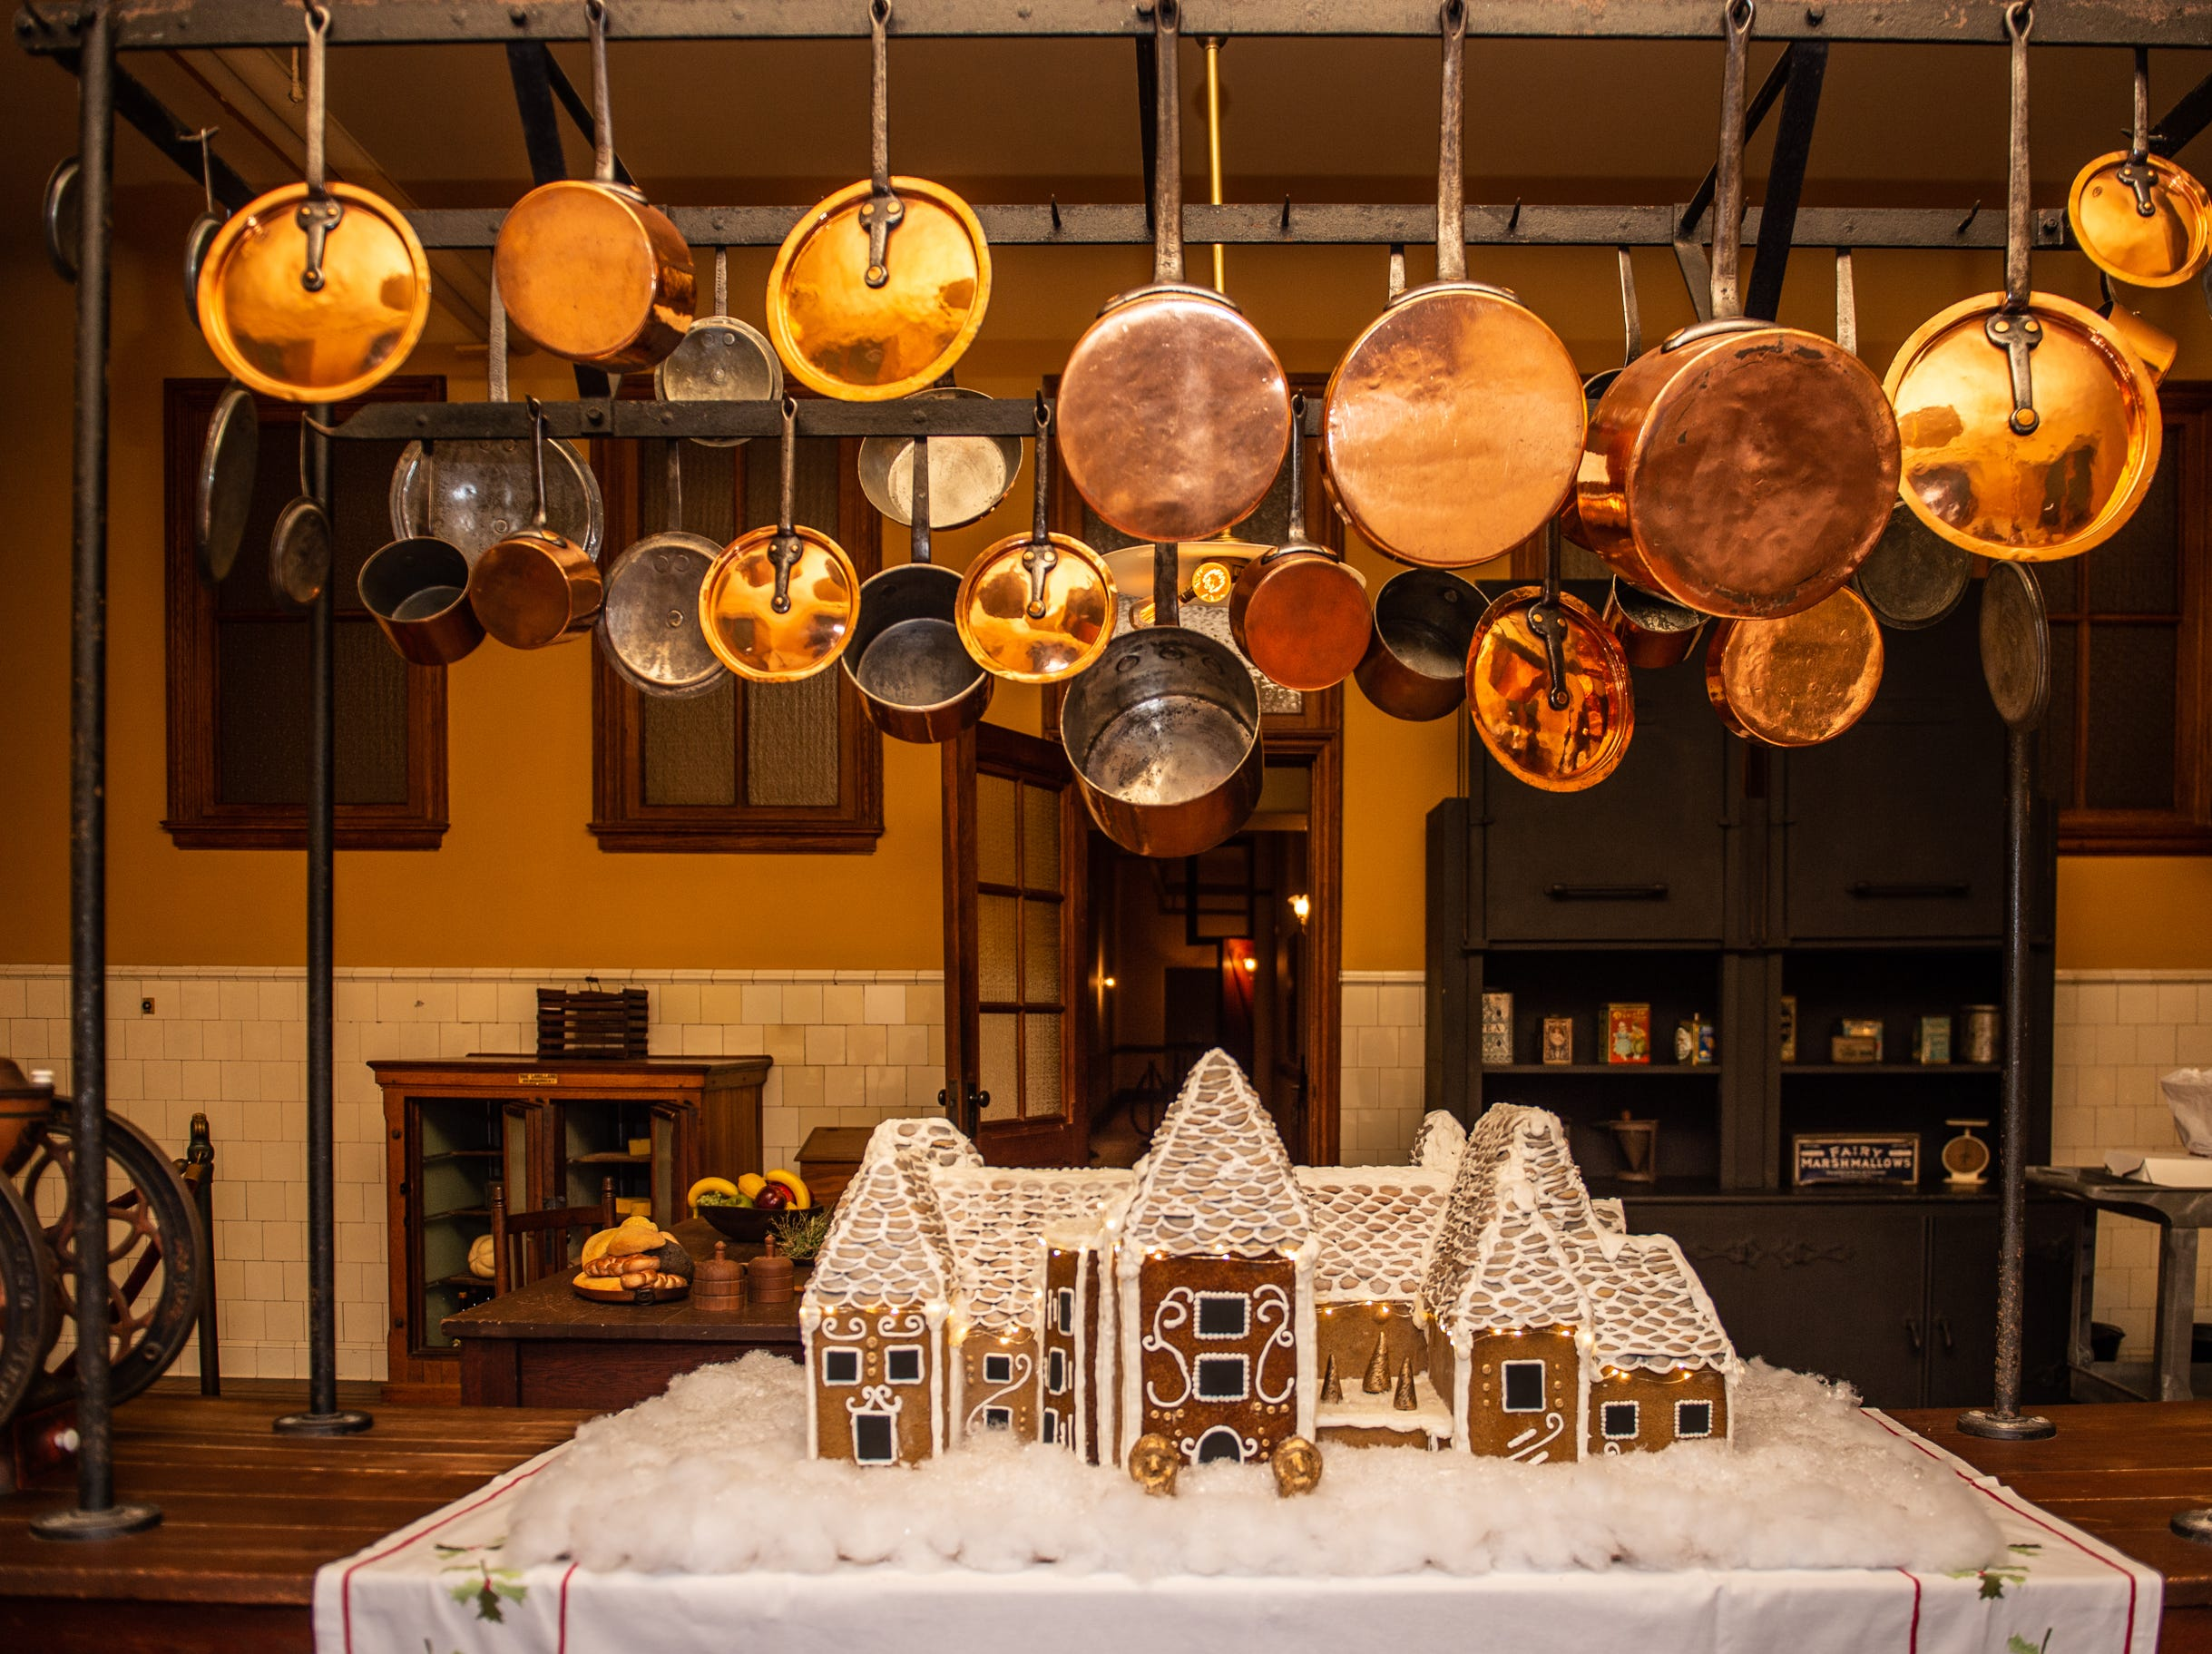 The completed gingerbread house sits in the Biltmore Estate kitchen the morning of Nov. 2, 2018. The annual edible construction is supported by a skeleton in the general shape of Biltmore House that is used year after year.